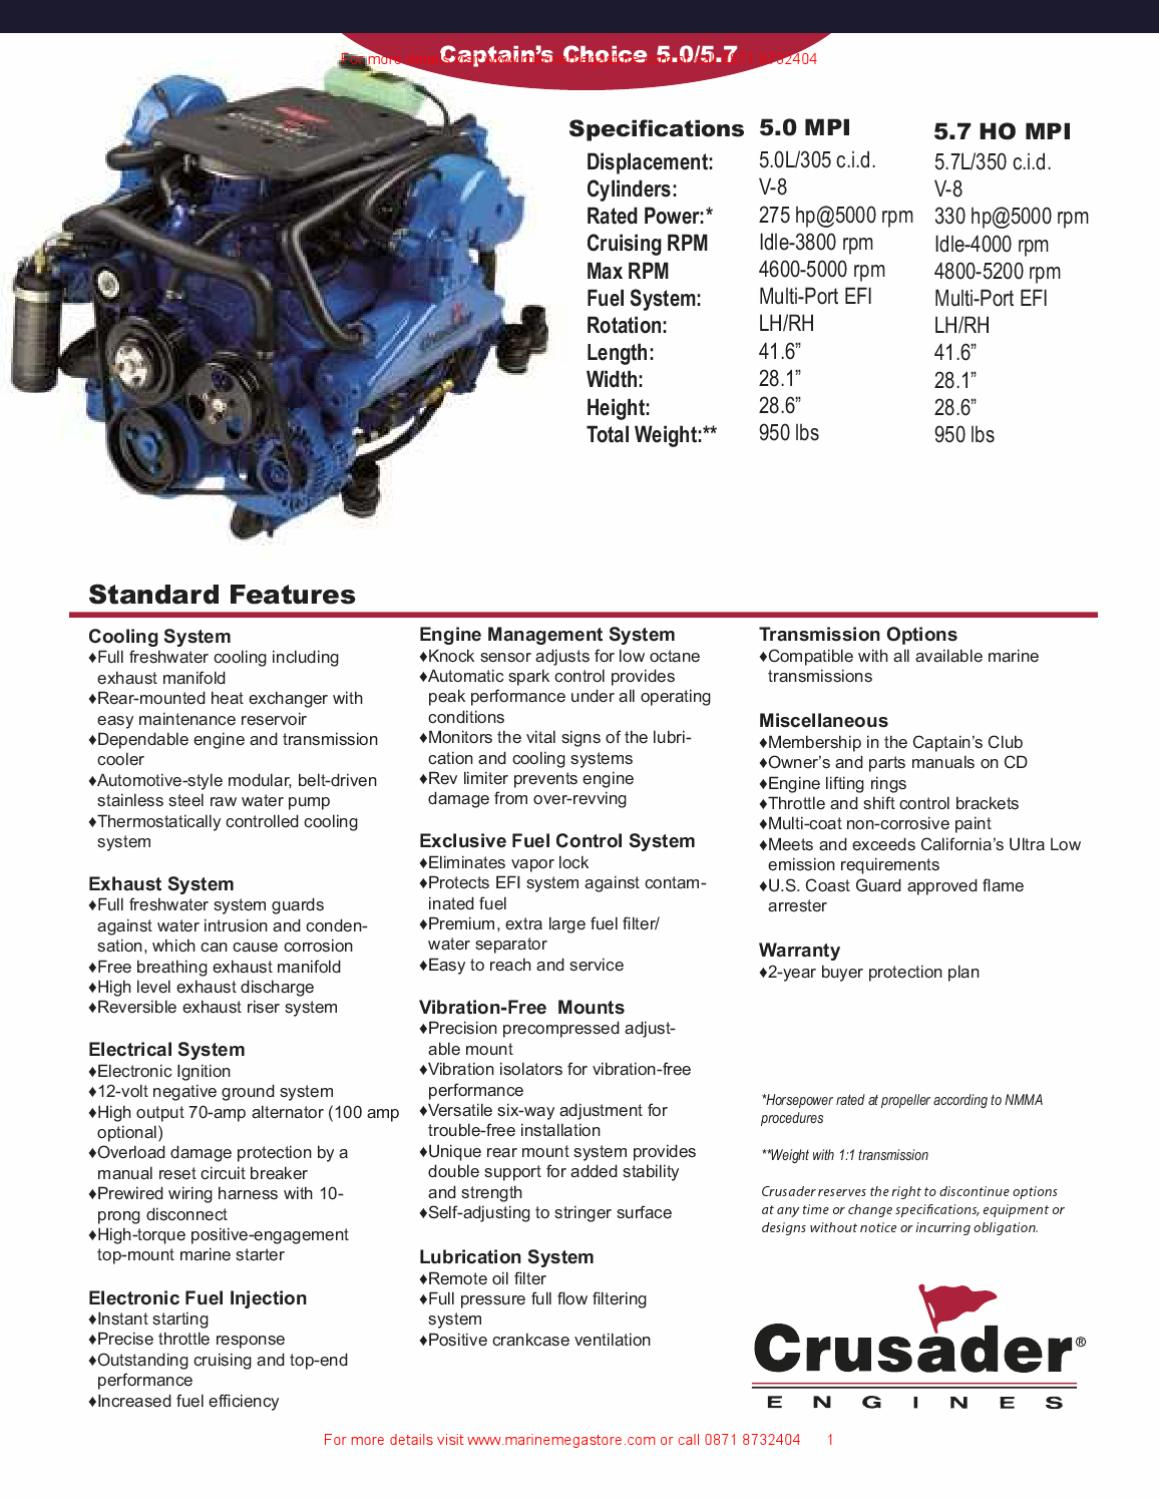 crusader crusader captain s choice 5 0 5 7 by marine mega store ltd rh issuu com 5.7 Crusader Engines Parts 5.7 Crusader Engines Parts